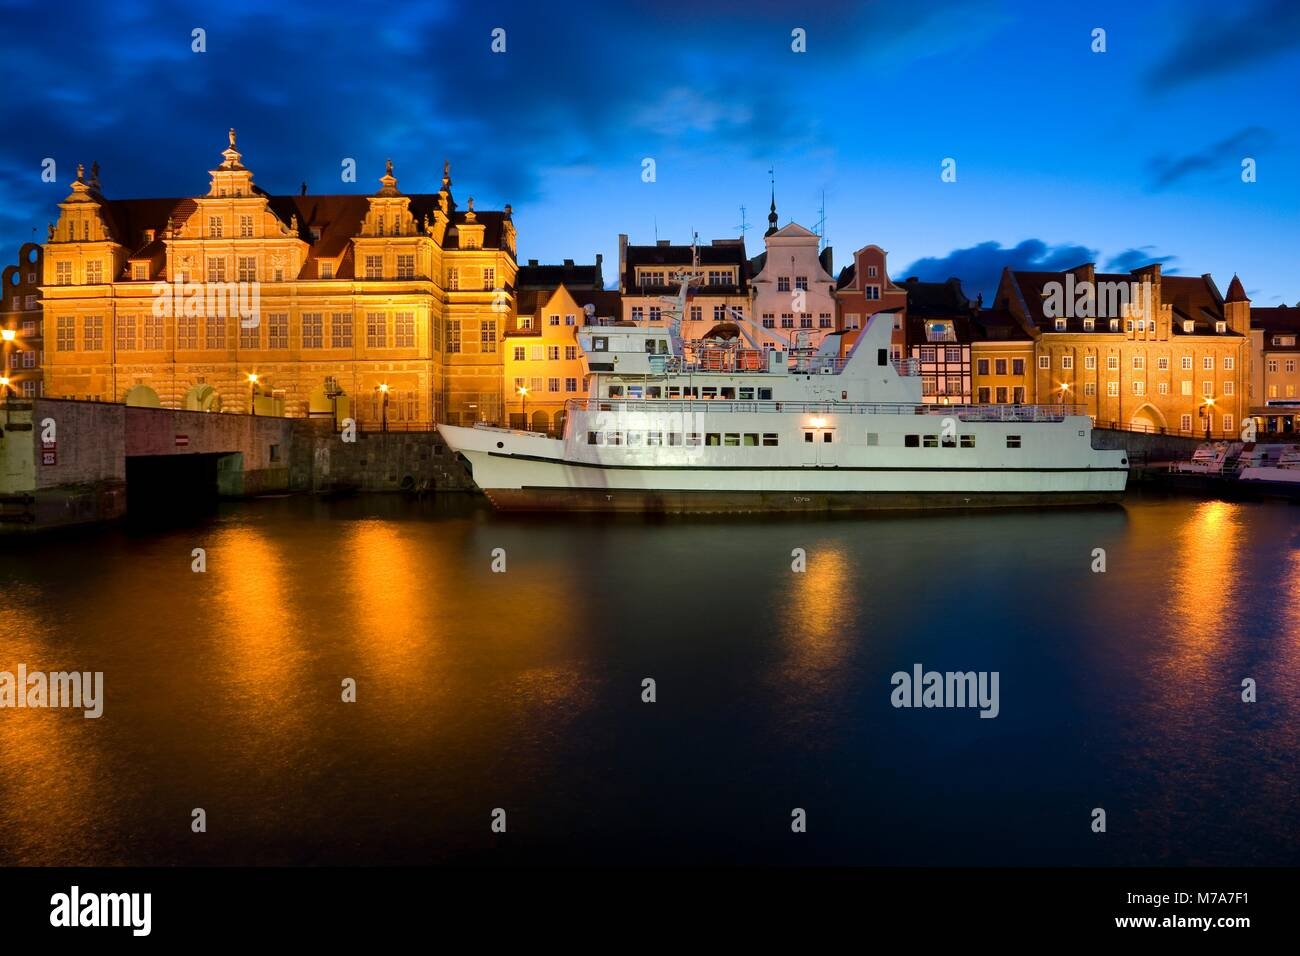 Ship moored by Long Embankment on Motlawa River in the Old Town of Gdansk, Poland at night. Illuminated Green Gate - Stock Image